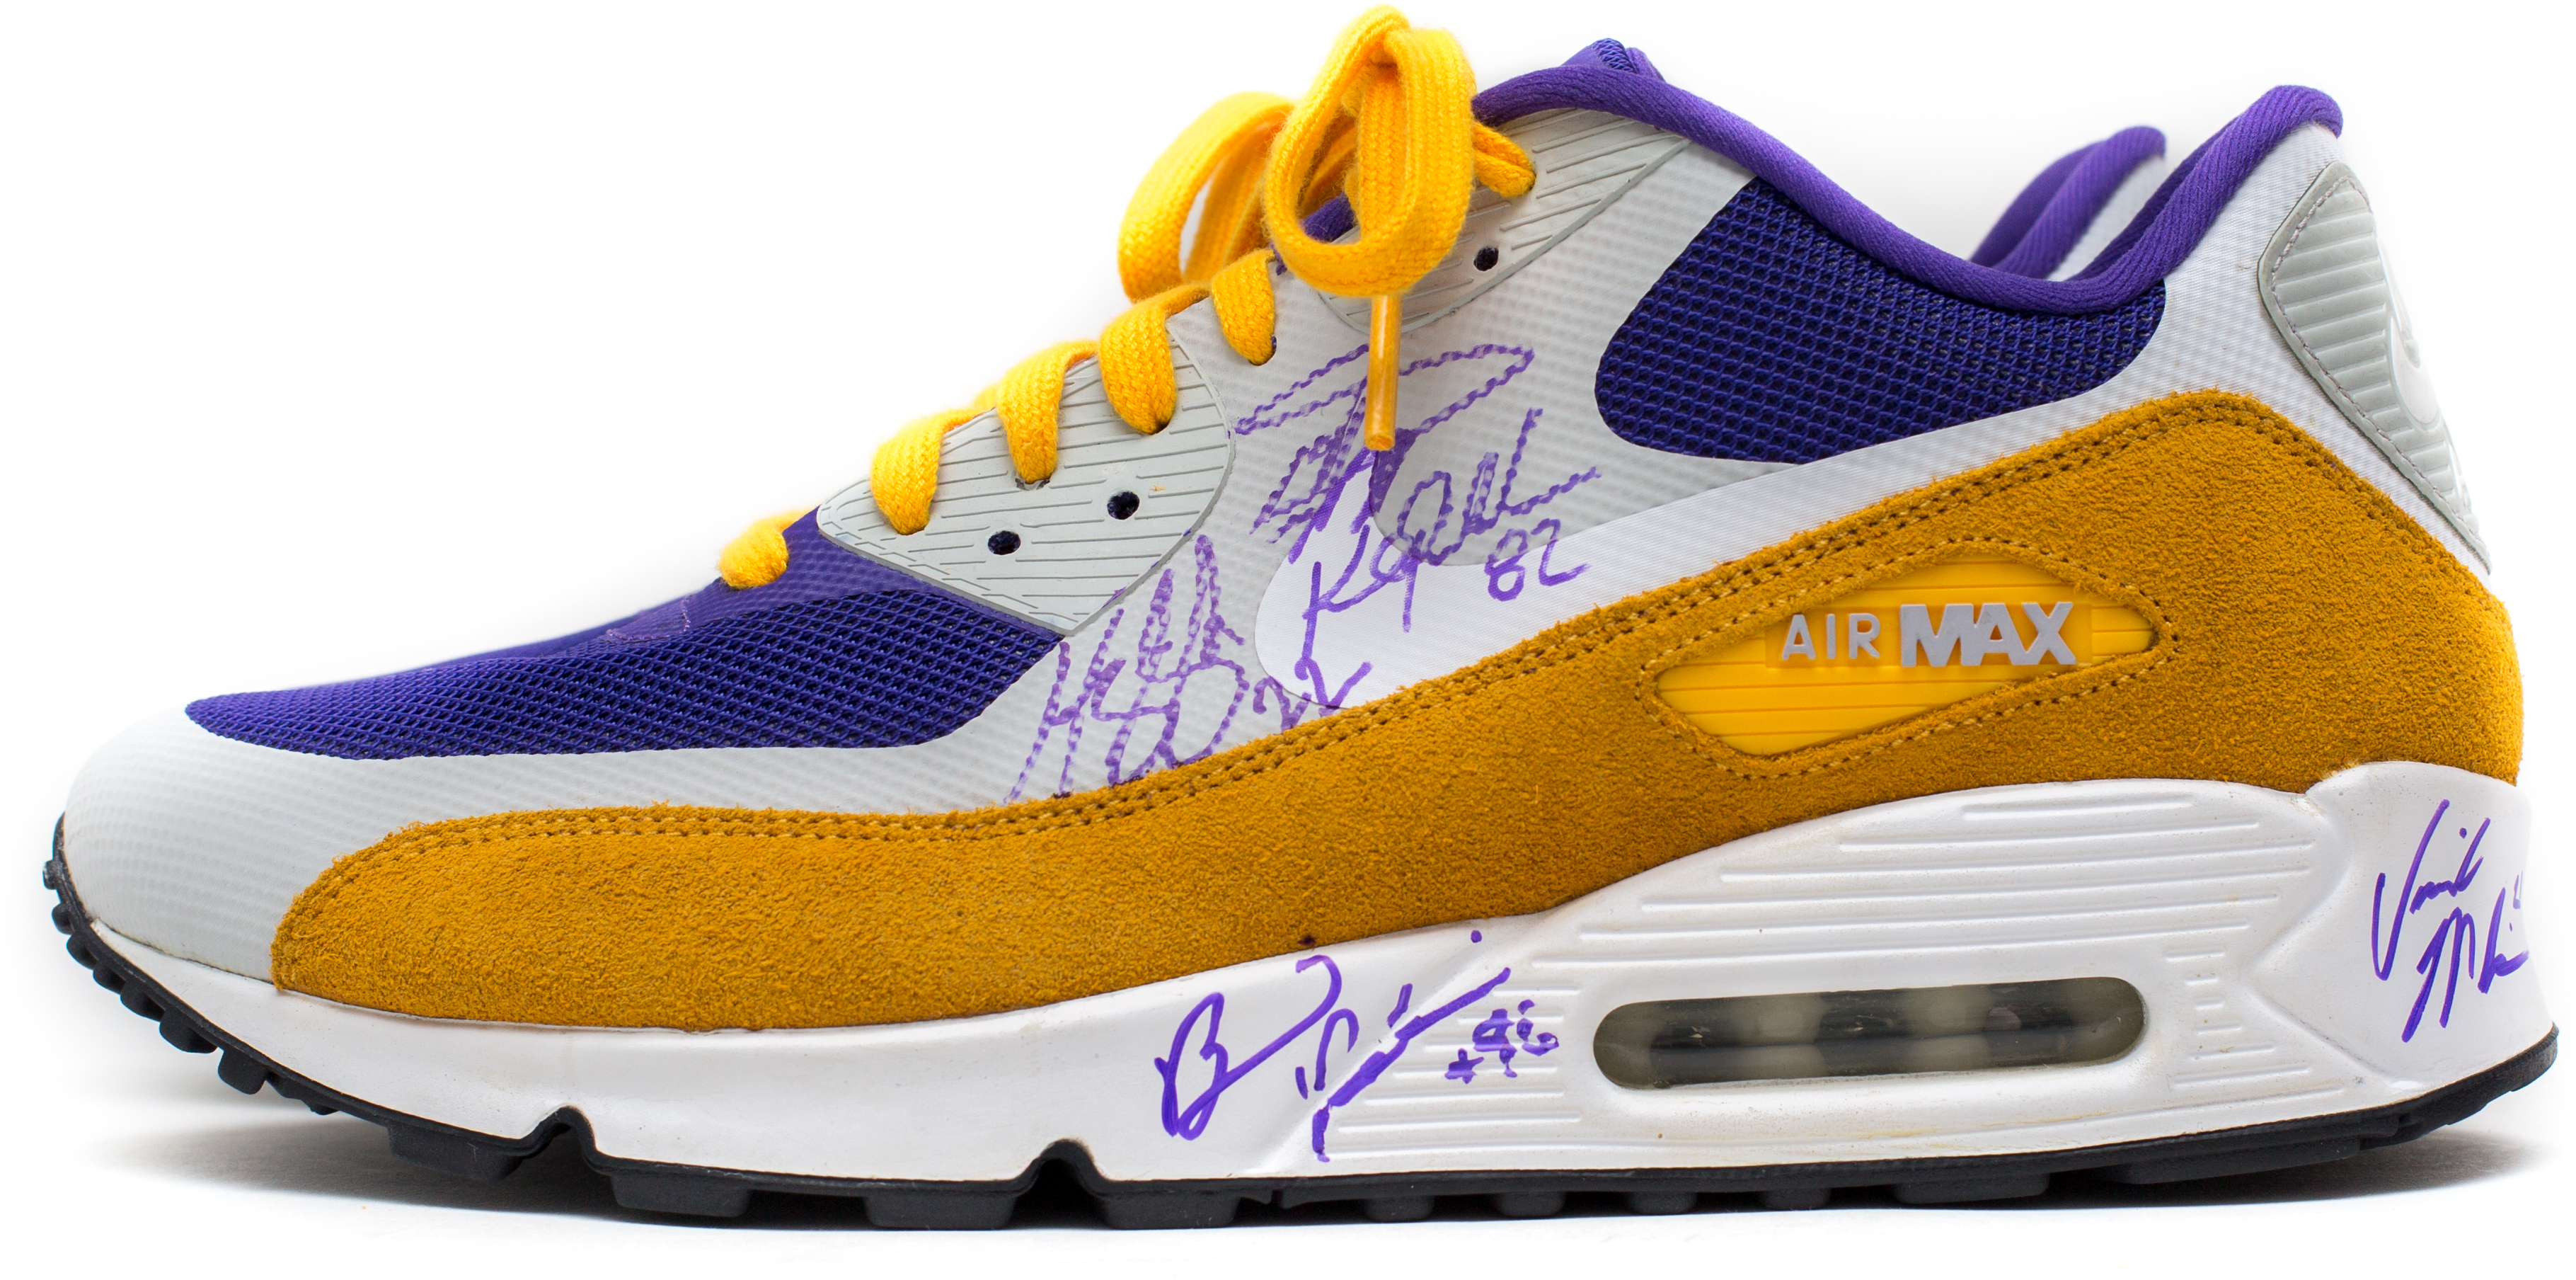 uk availability 3b790 773f9 ... nike air max 90 minnesota vikings signed sz 12 ...